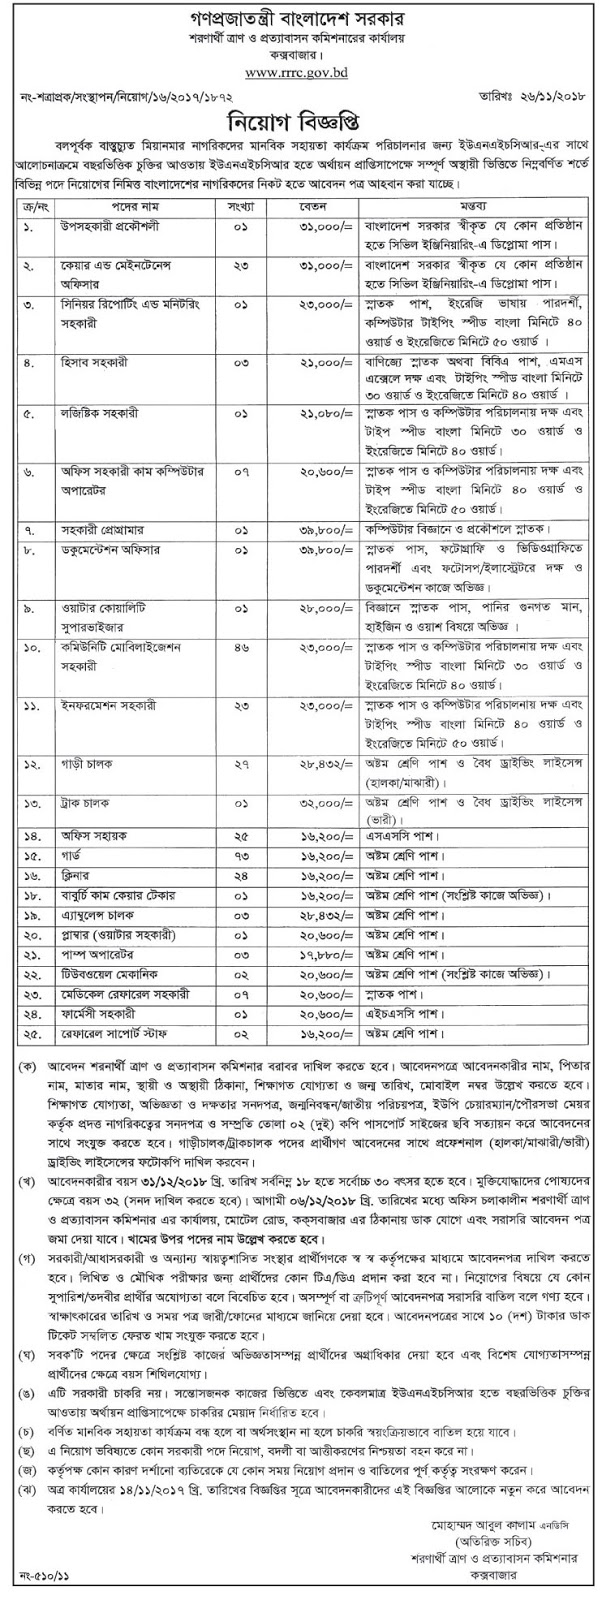 Refugee Relief and Reclamation Commissioner, Cox's Bazar Job Circular 2018